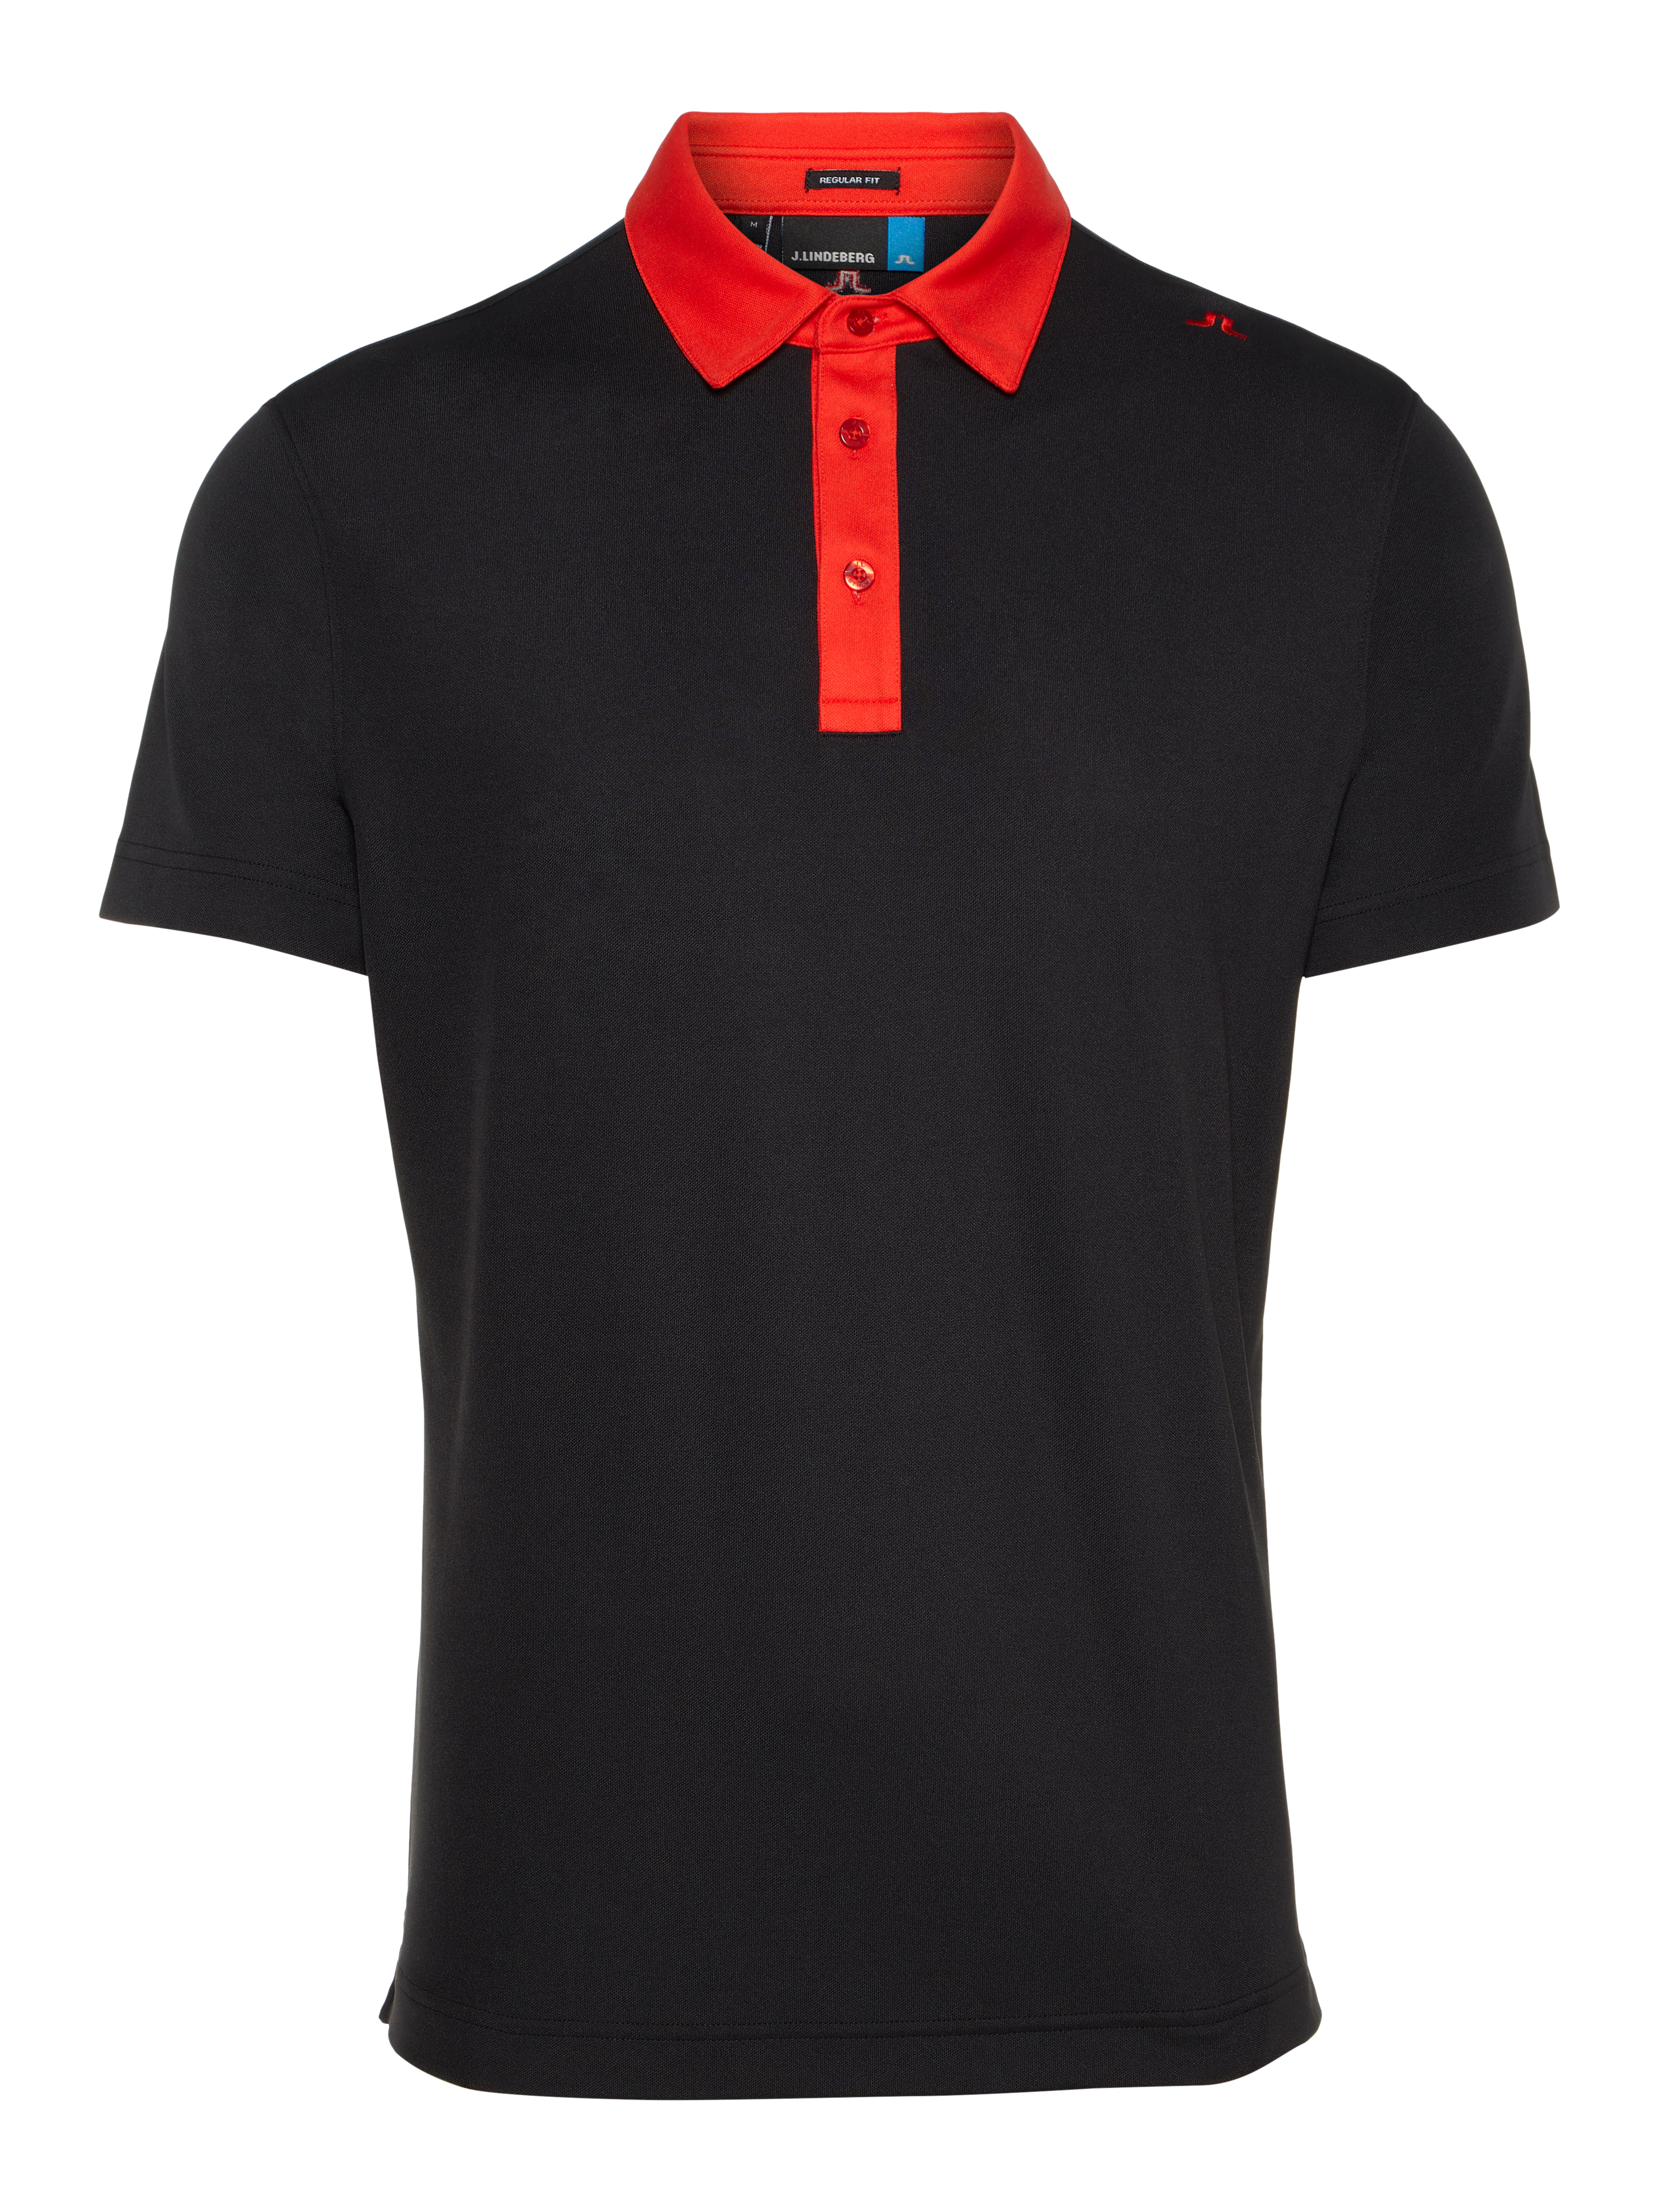 J Lindeberg Henry Lux Pique Polo Product image. Short sleeve polo shirt ... a6015623c6